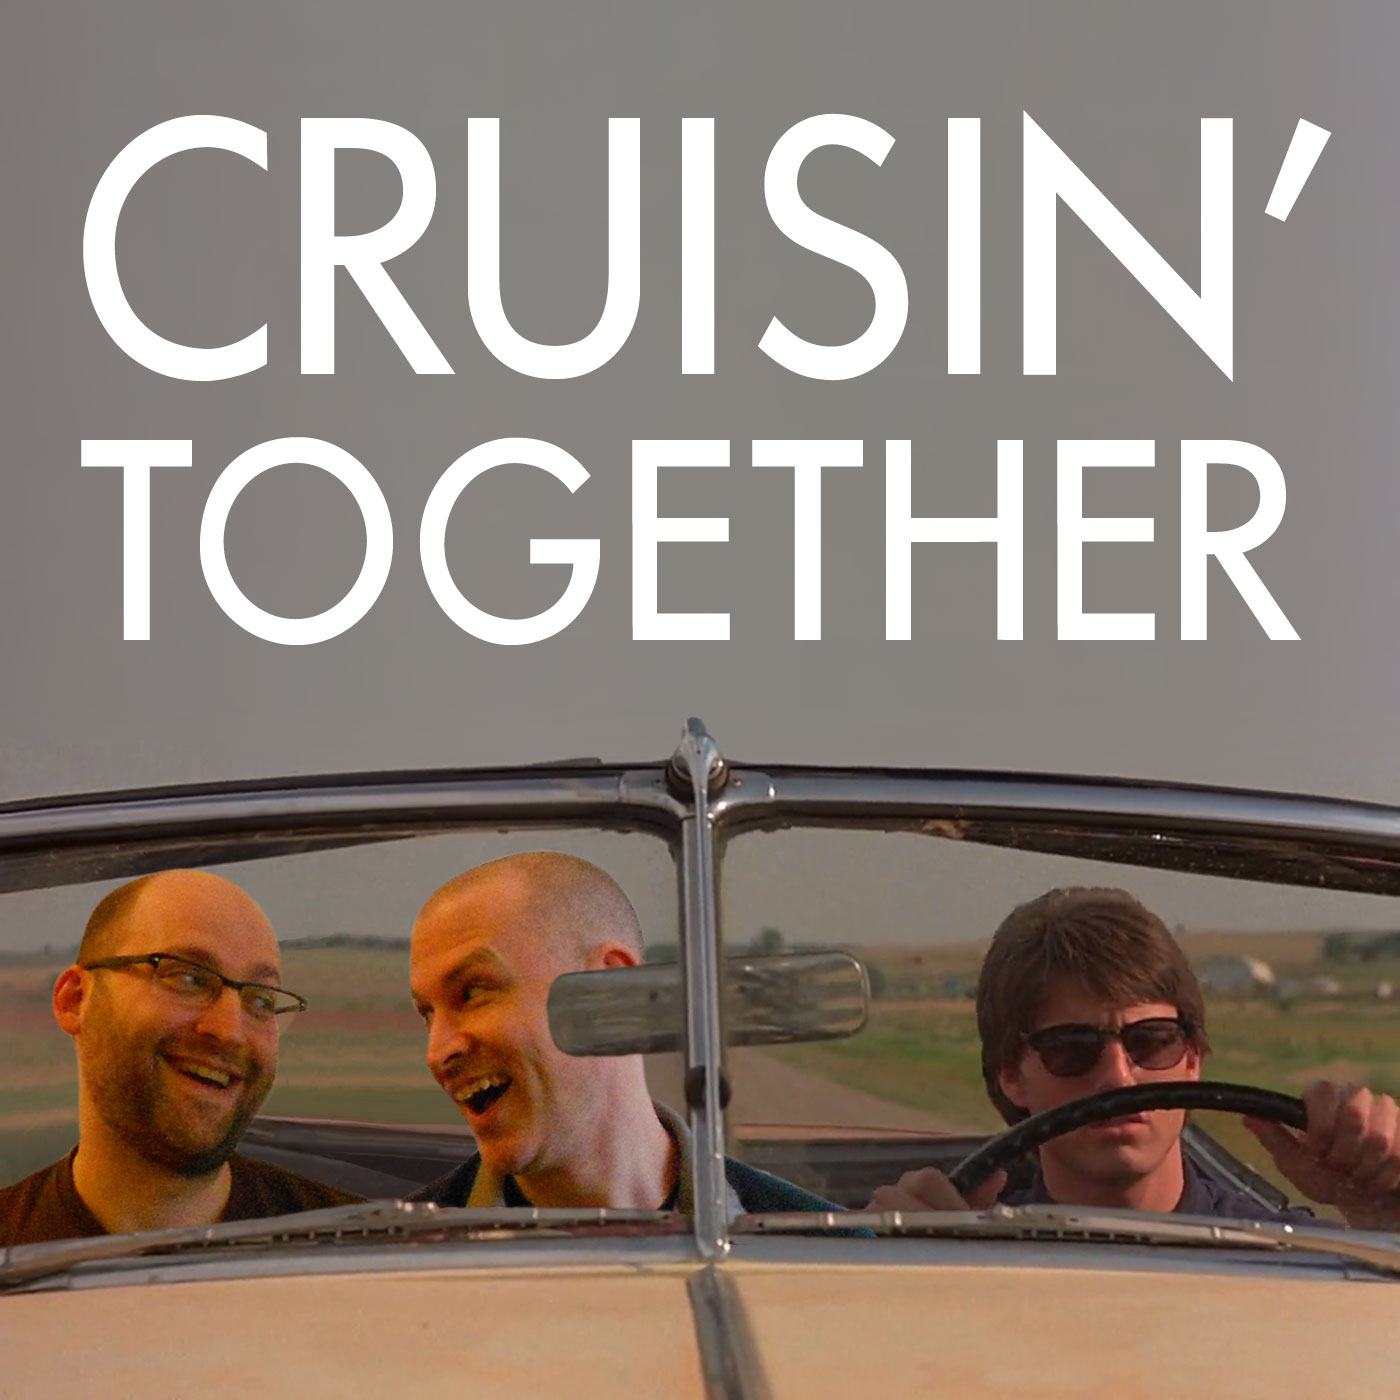 Cruisin' Together